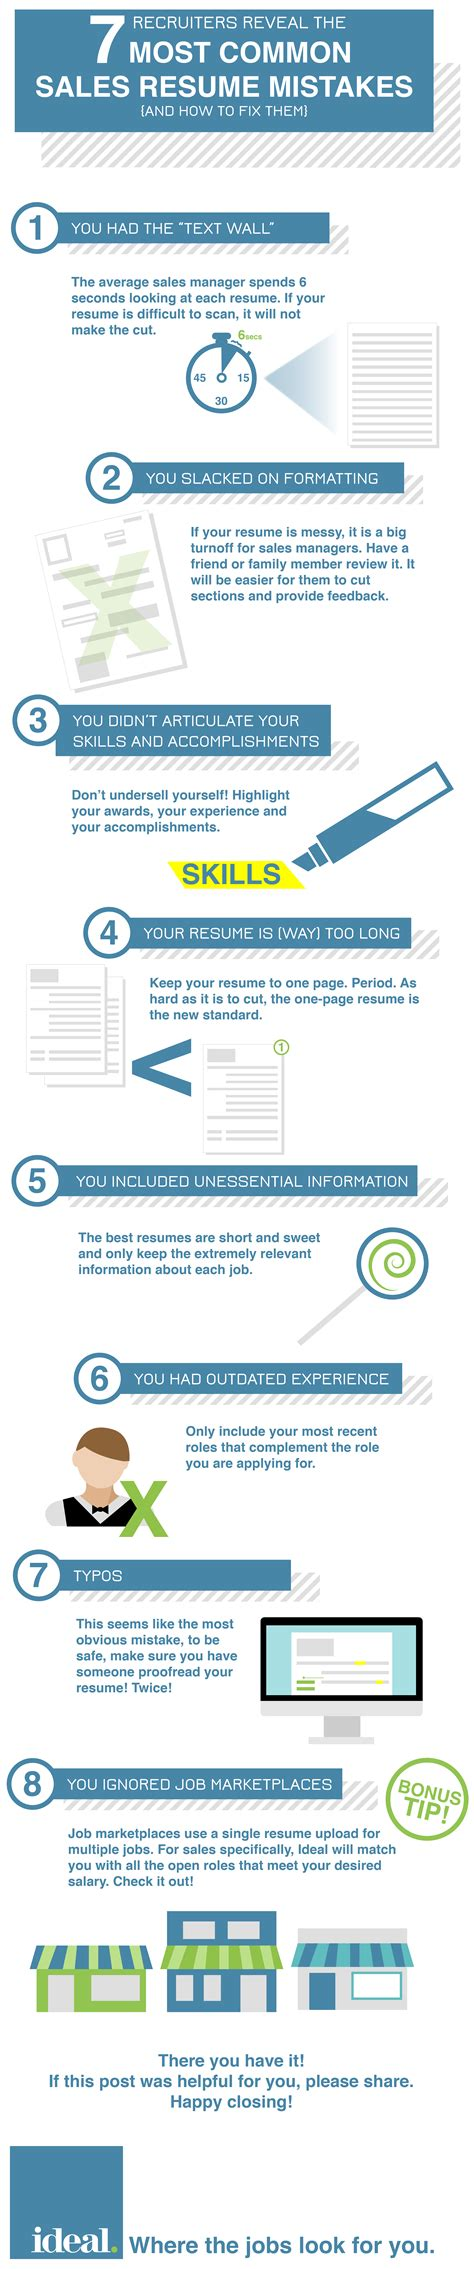 7 Common Resume Mistakes by Recruiters Reveal The 7 Most Common Sales Resume Mistakes